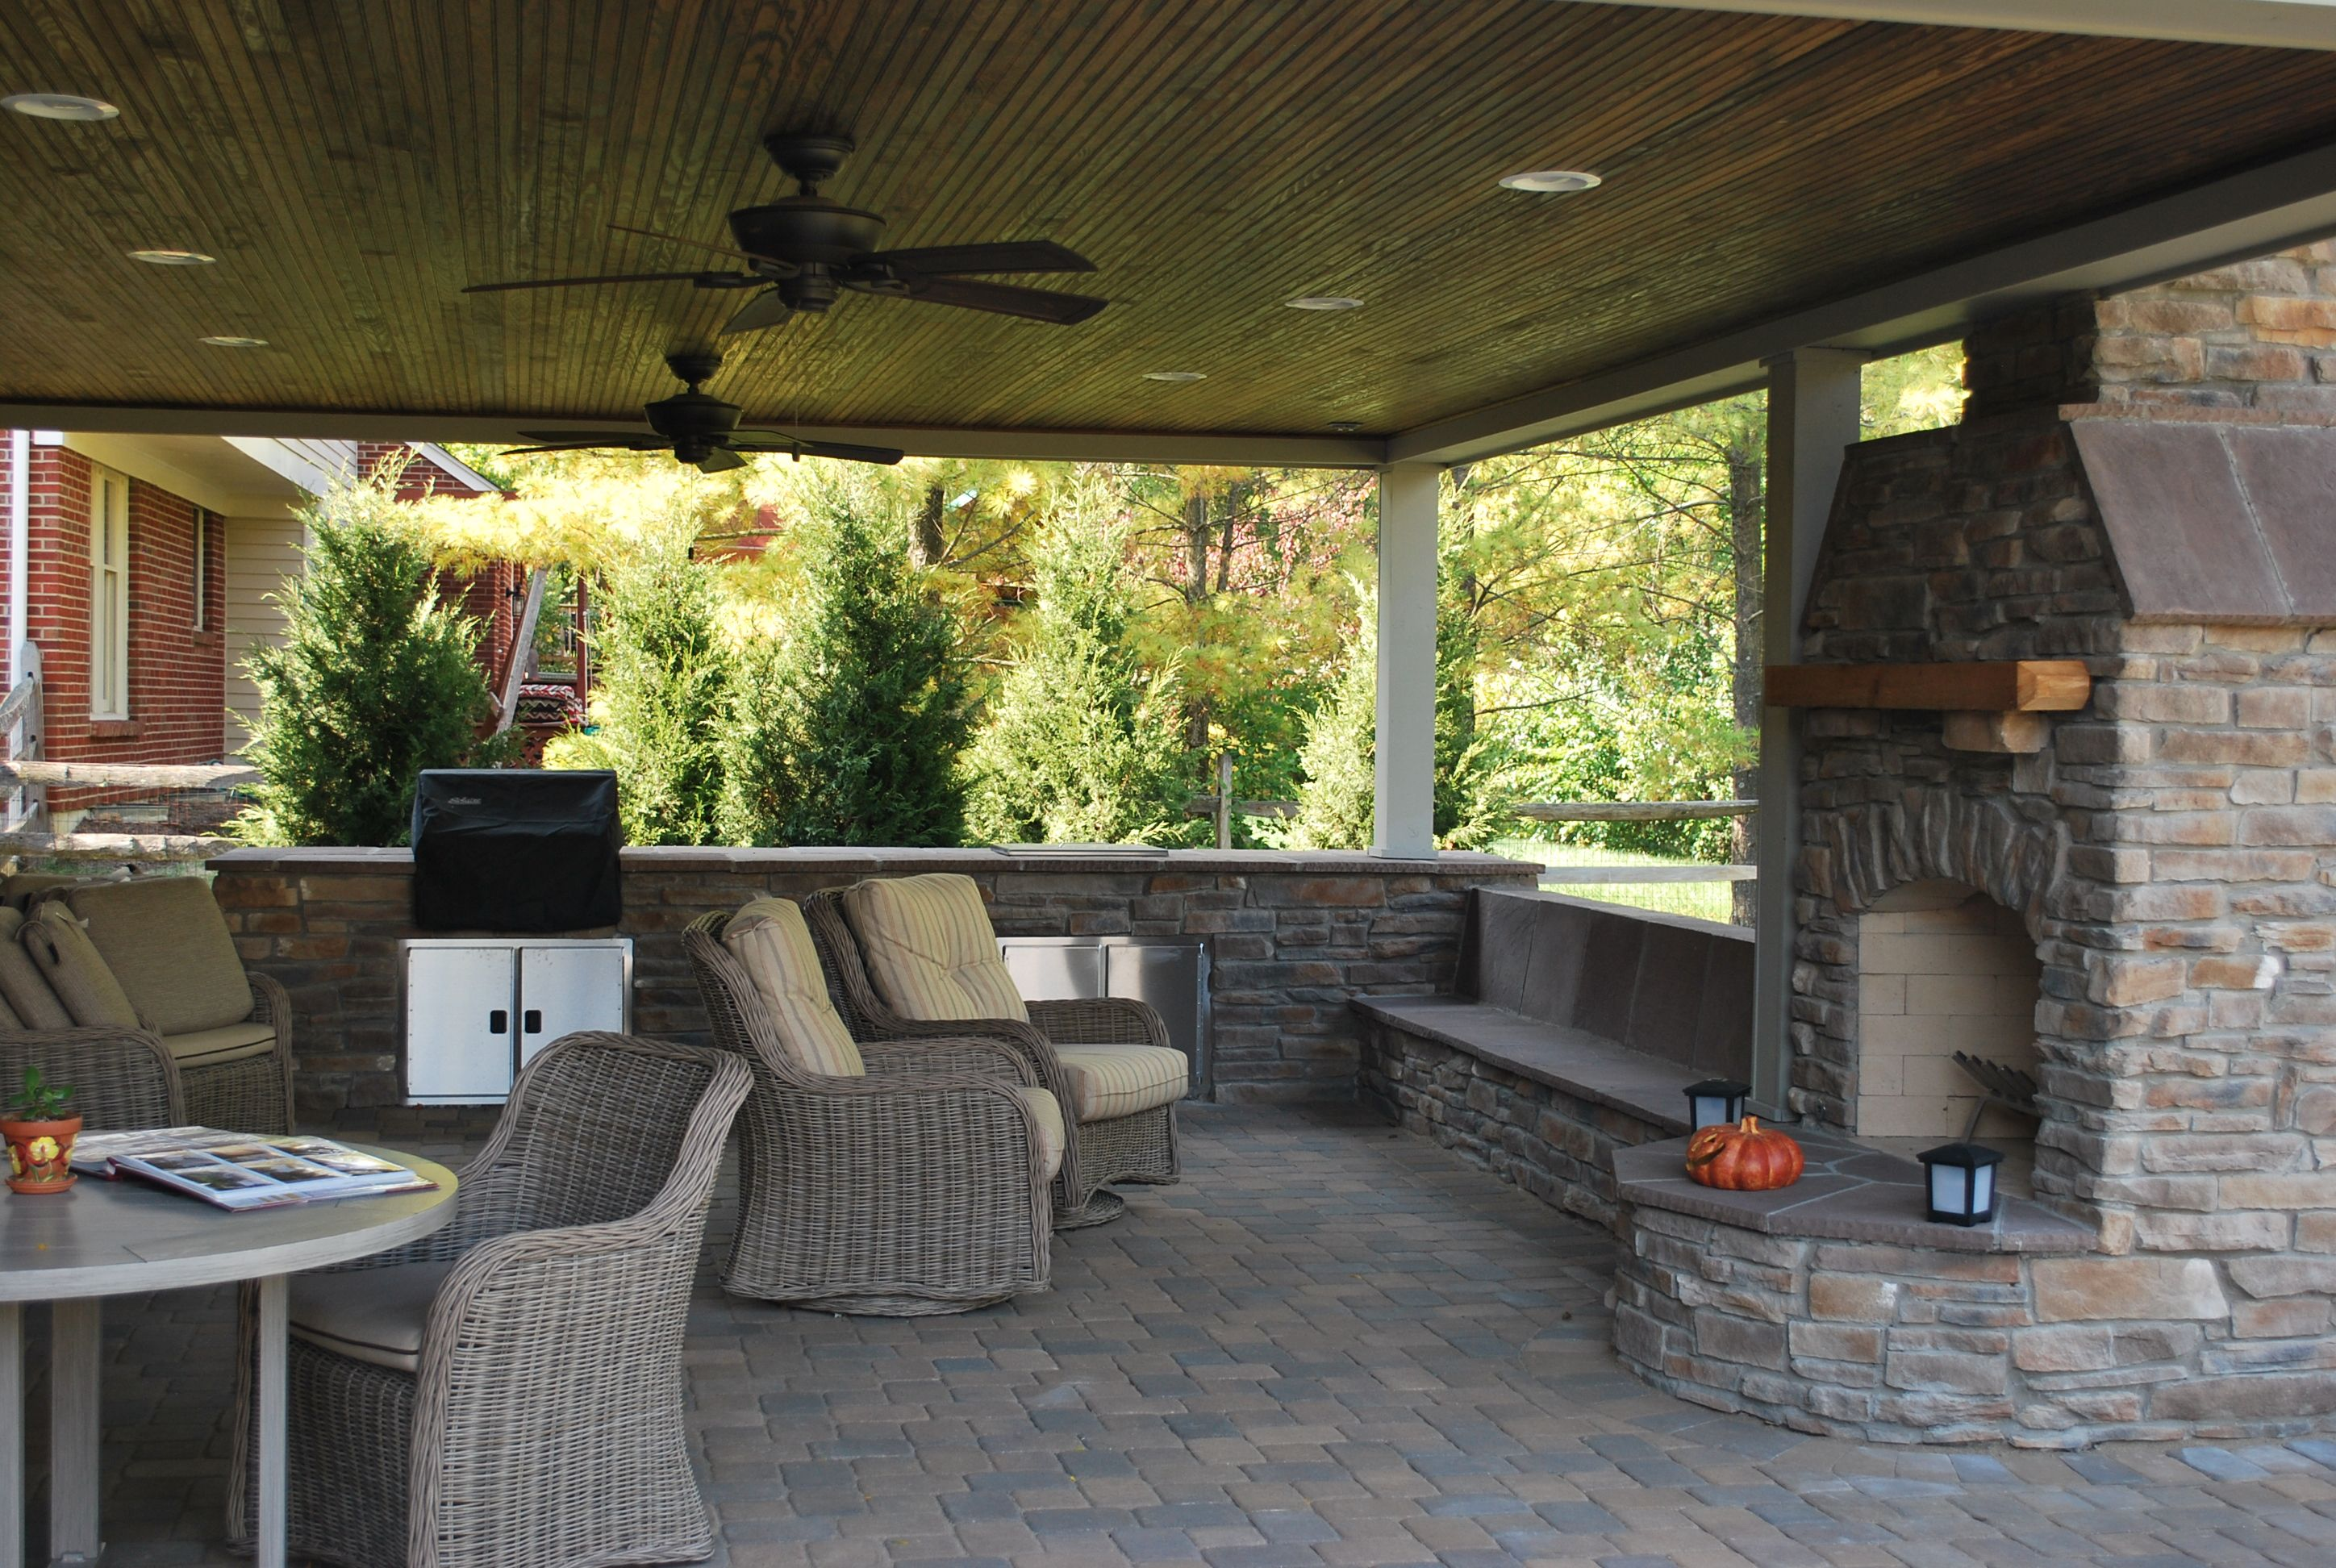 Cincinnati | Outdoor design, Building design, Outdoor ... on Outdoor Living Buildings id=63075